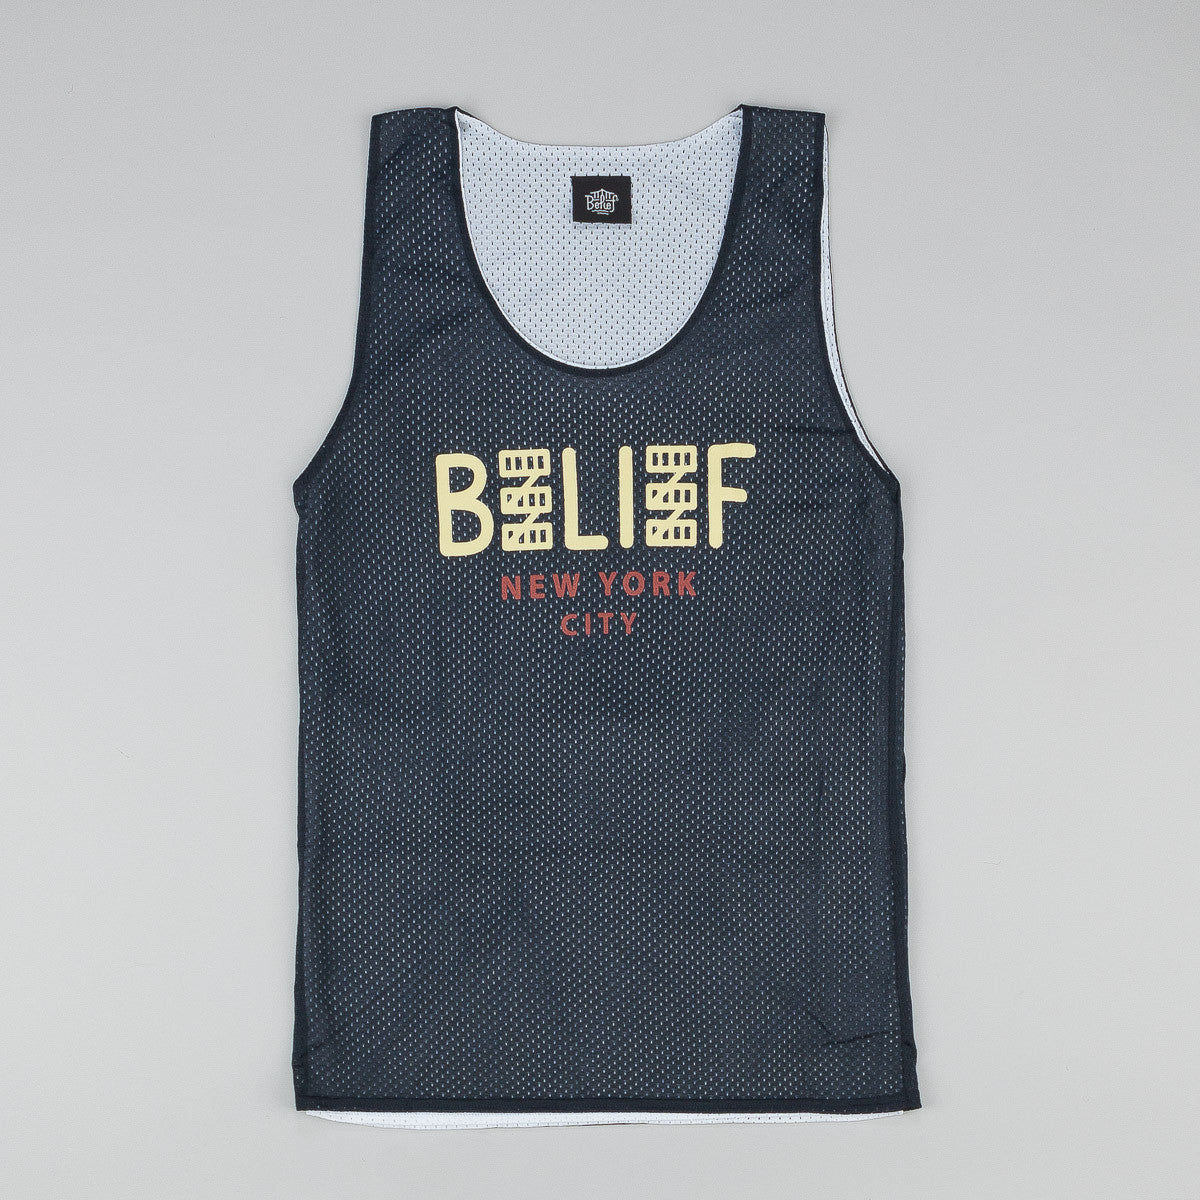 Belief City Block Basketball Jersey - Navy